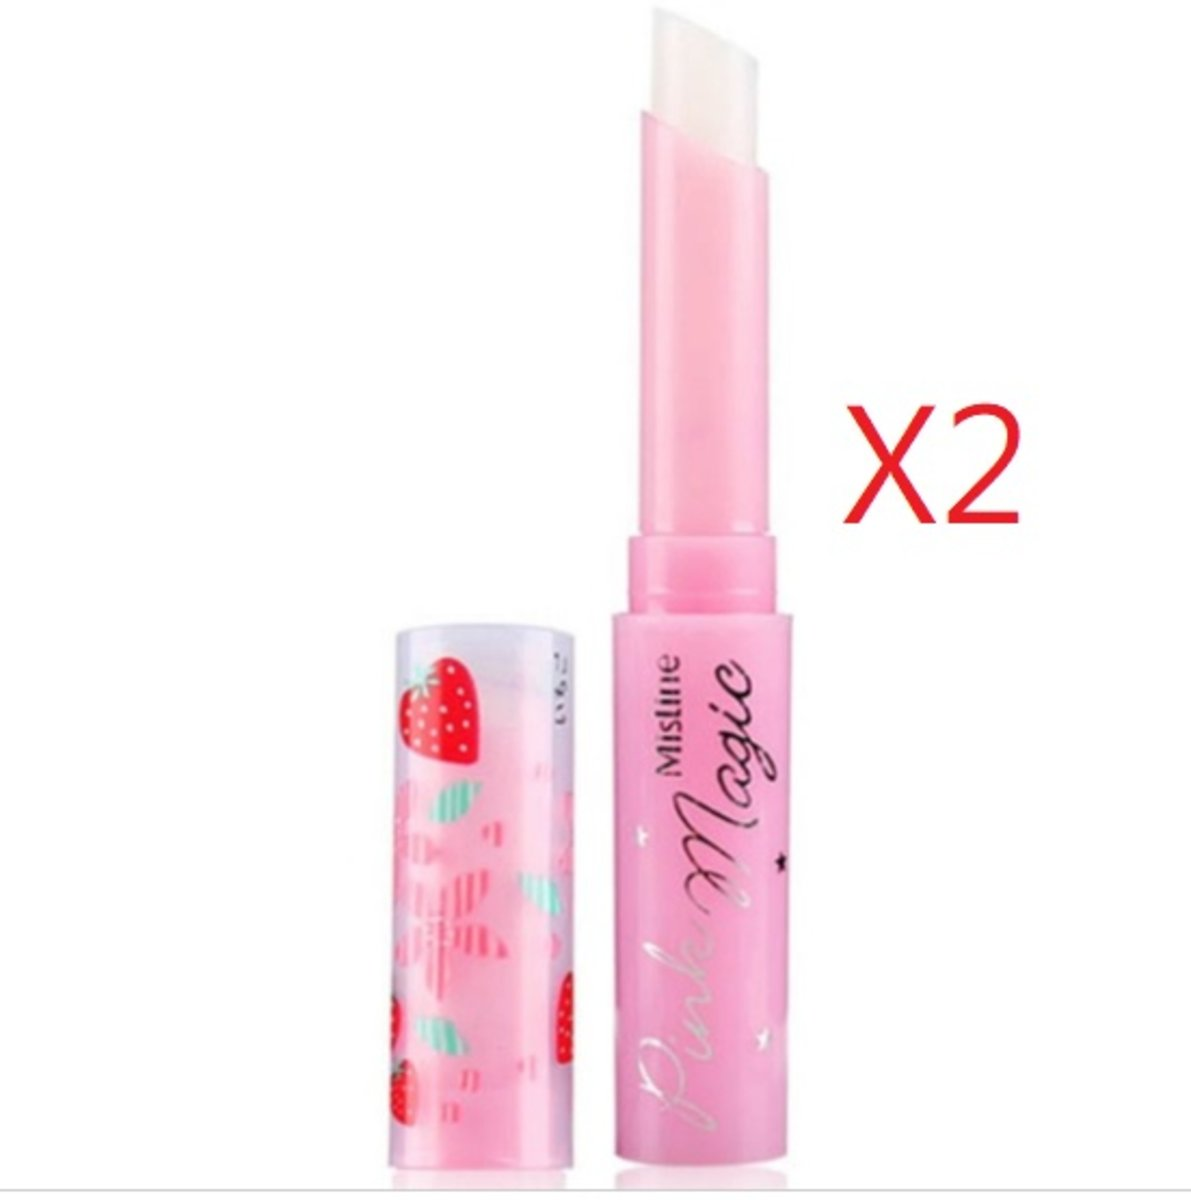 Pink Magic Strawberry Scent Plus Vitamin E Lip Balm X2